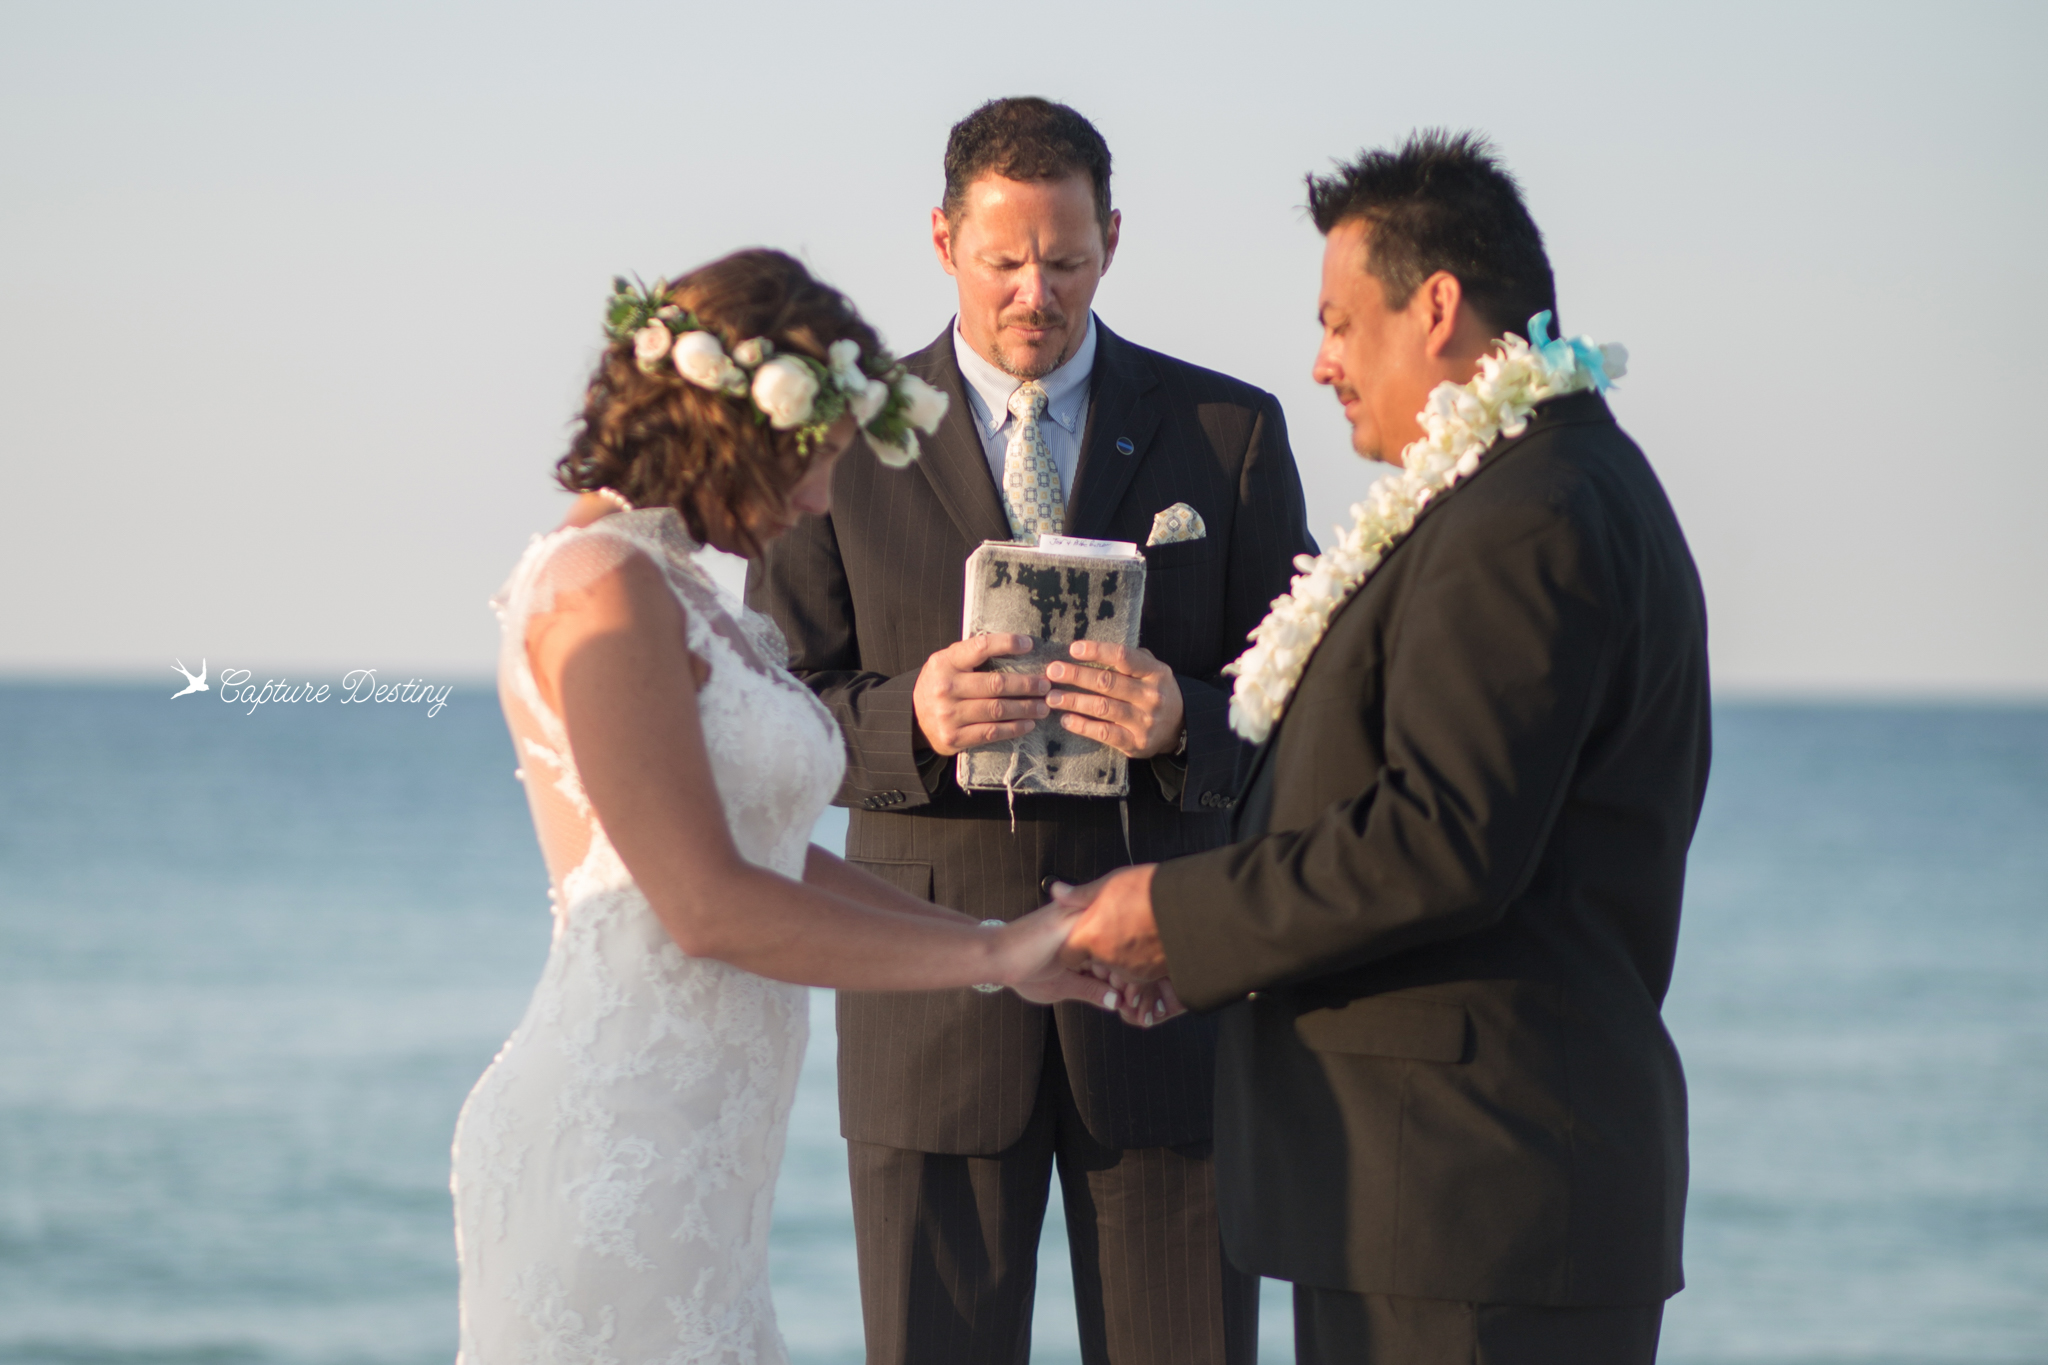 Short & Sweet - Needing just a short, simple, intimate wedding?Rev. Adams is a 4 time winner of the Best of Coast, ordained wedding officiant and has been recently Featured on the WEDDING CHICKS website & blog.Big or small, the BEACHPREACHER would LOVE to meet you anywhere in the area for a simple beach wedding. Check out his 200+ five-star reviews on Facebook, Google, or WeddingWire.You can visit Reverend Bryan Adams at BeachPreacher.com for more information about his Pensacola Beach Wedding Services.Click here for pricing info.